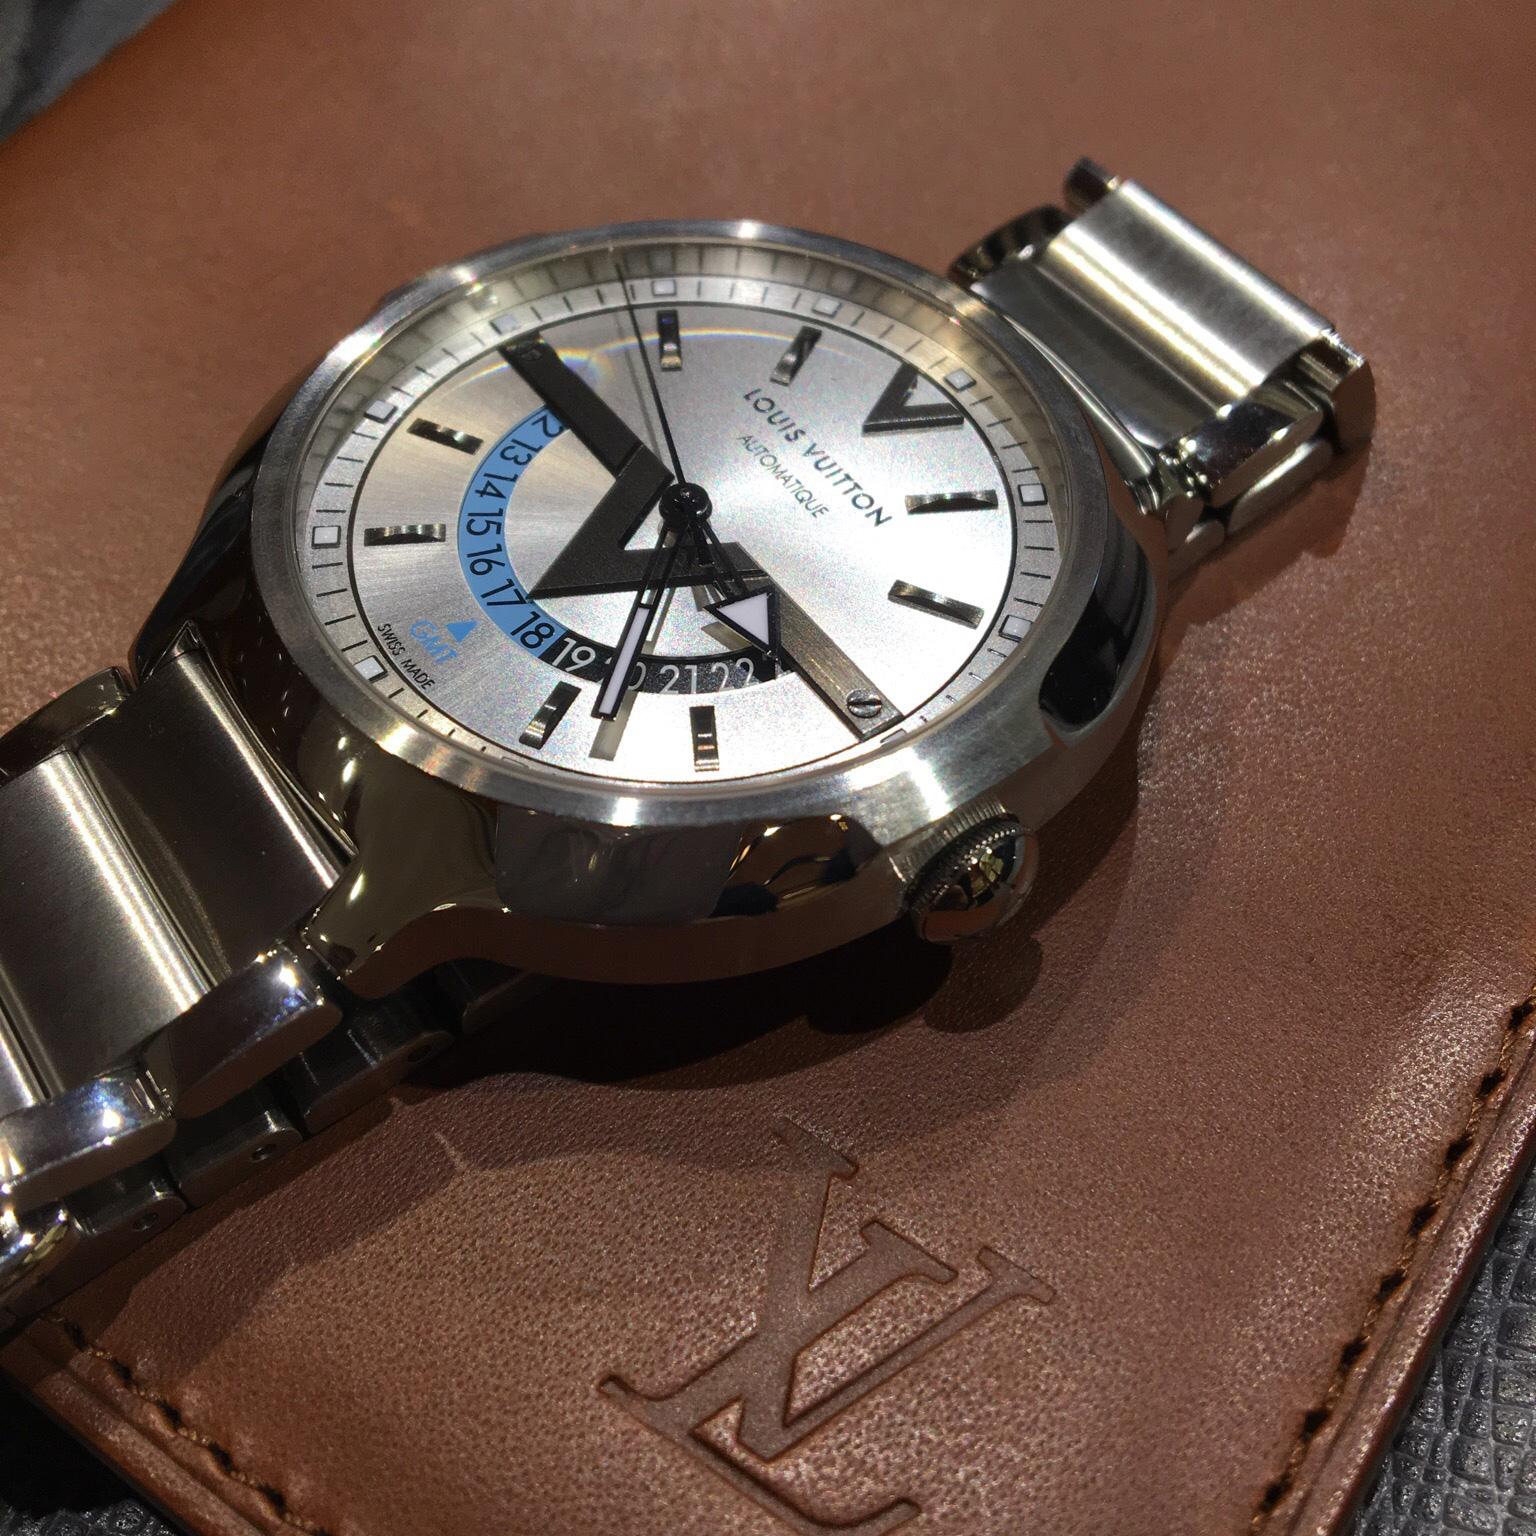 Louis Vuitton Voyager GMT watch in steel